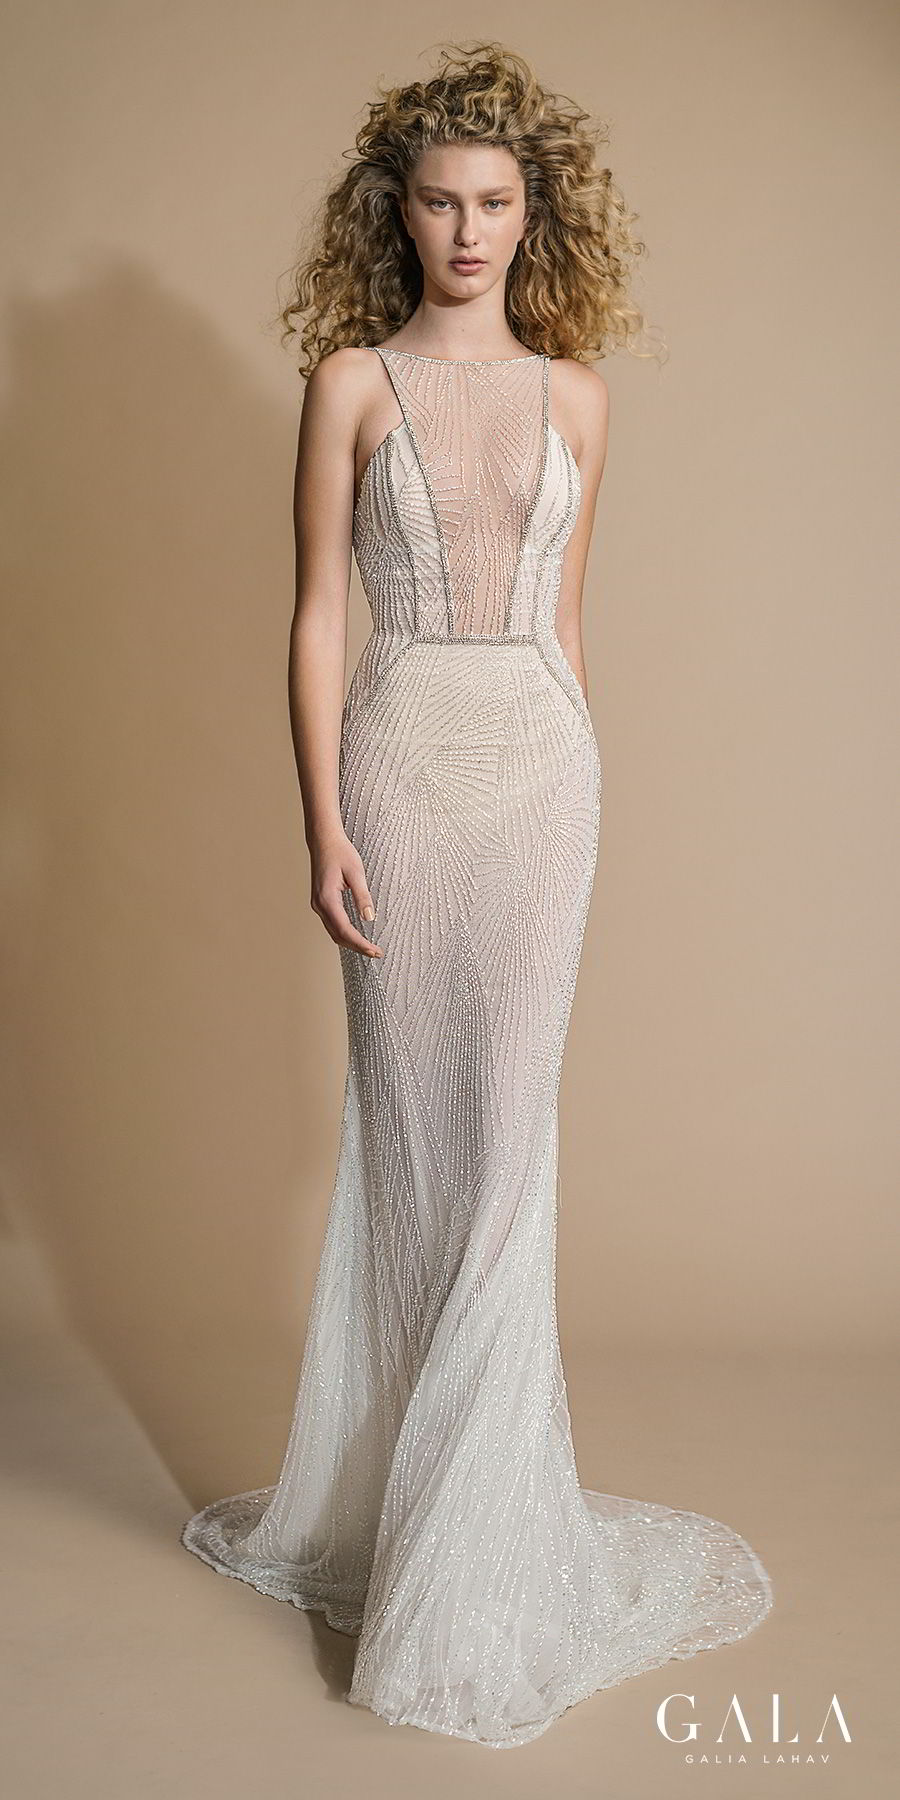 galia lahav gala 2019 bridal sleeveless halter jewel neck full embellishment glamorous art deco sheath wedding dress open back sweep train (110) mv